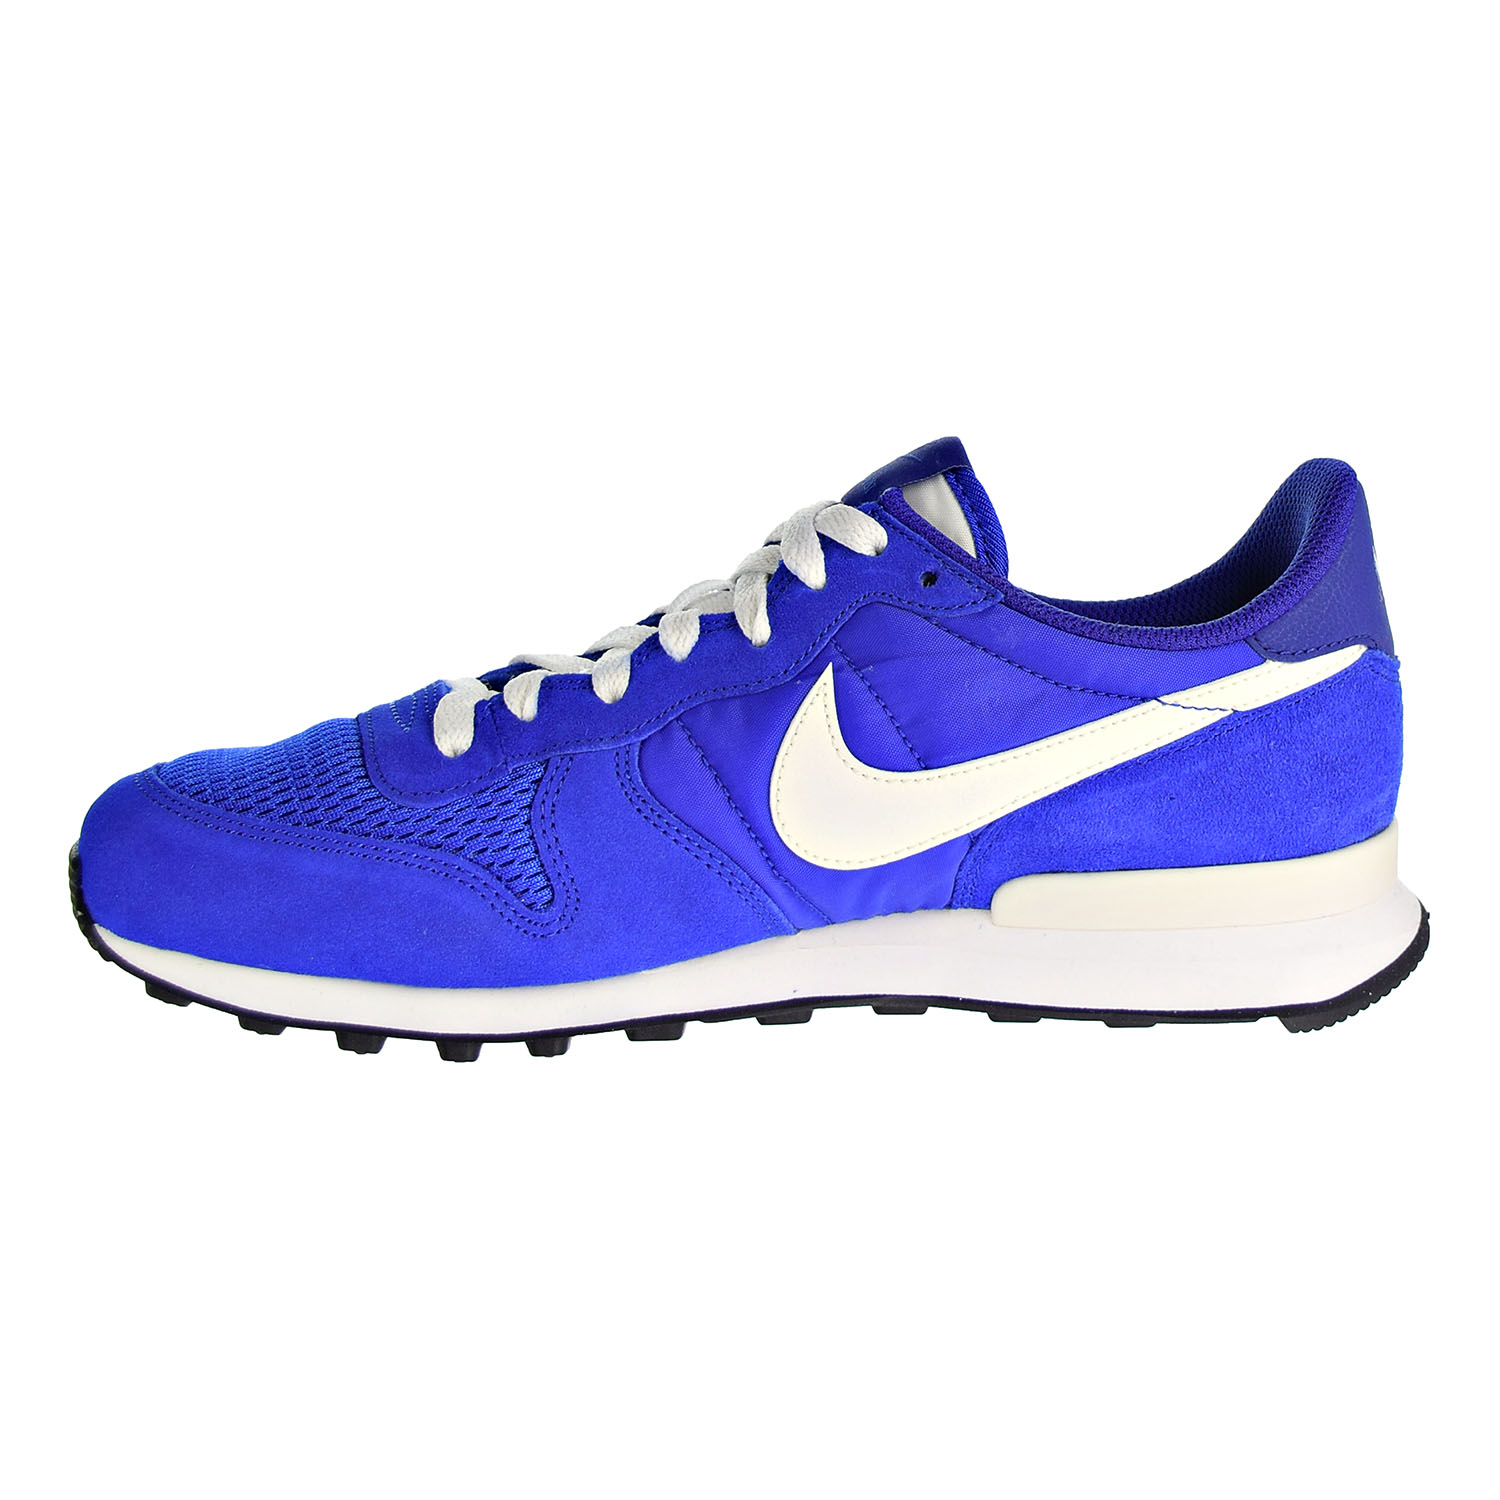 Nike Internationalist Men's Shoes Racer Blue/Sail/Sail 828041-411